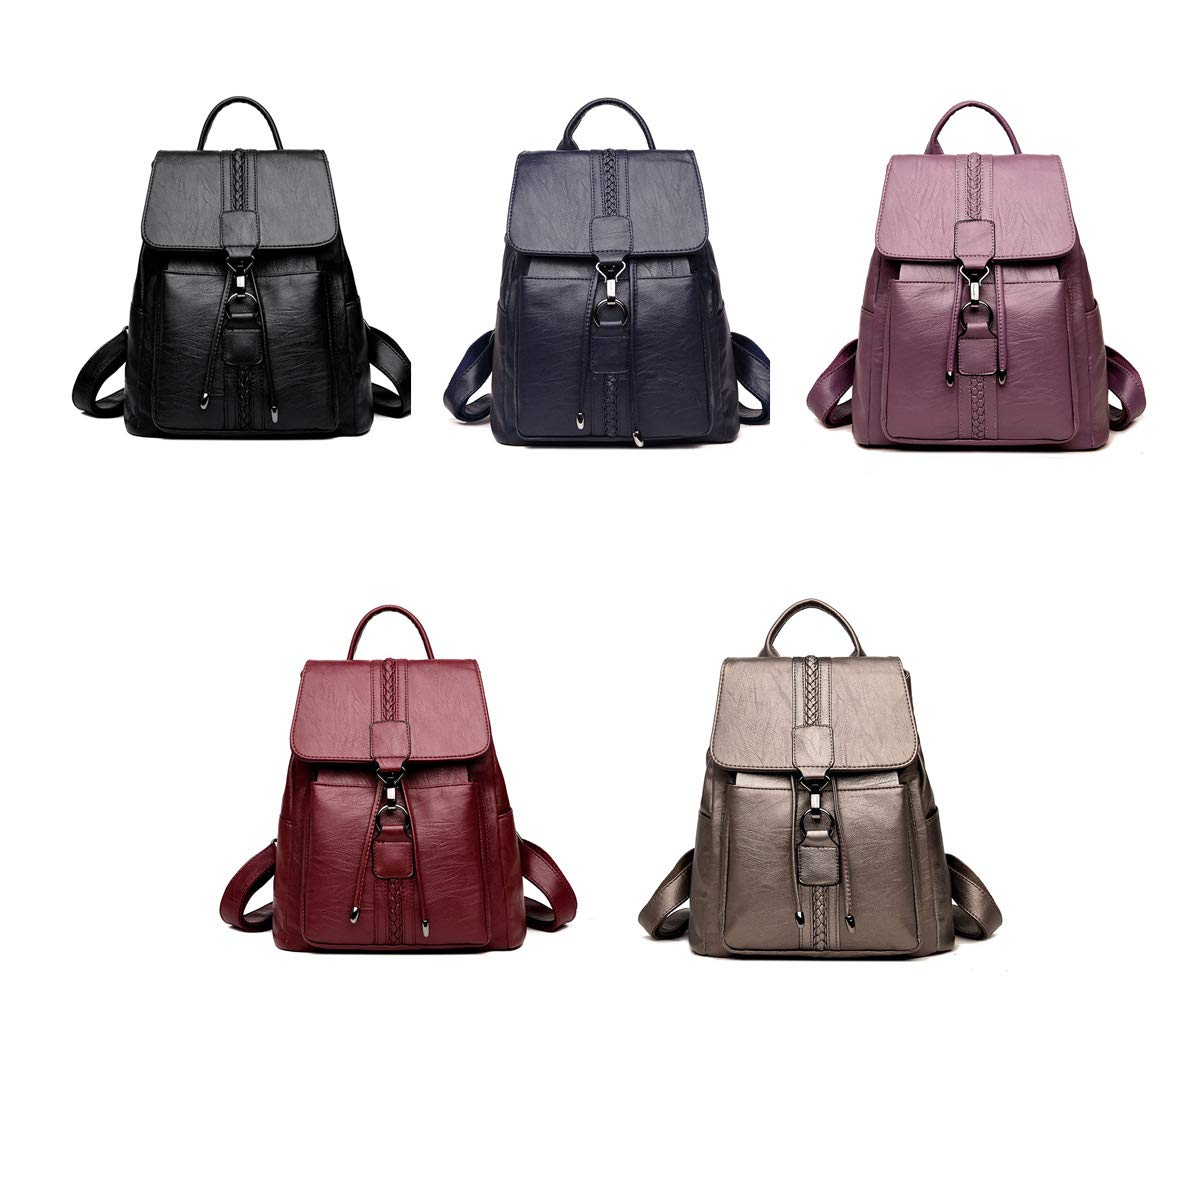 Color : Bronze, Size : 32cm28cm14cm PU Leather Haoyushangmao Girls Multi-Purpose Backpack for Daily Travel//Outdoor//Travel//School//Work//Fashion//Leisure Generous and Simple. Five Colors